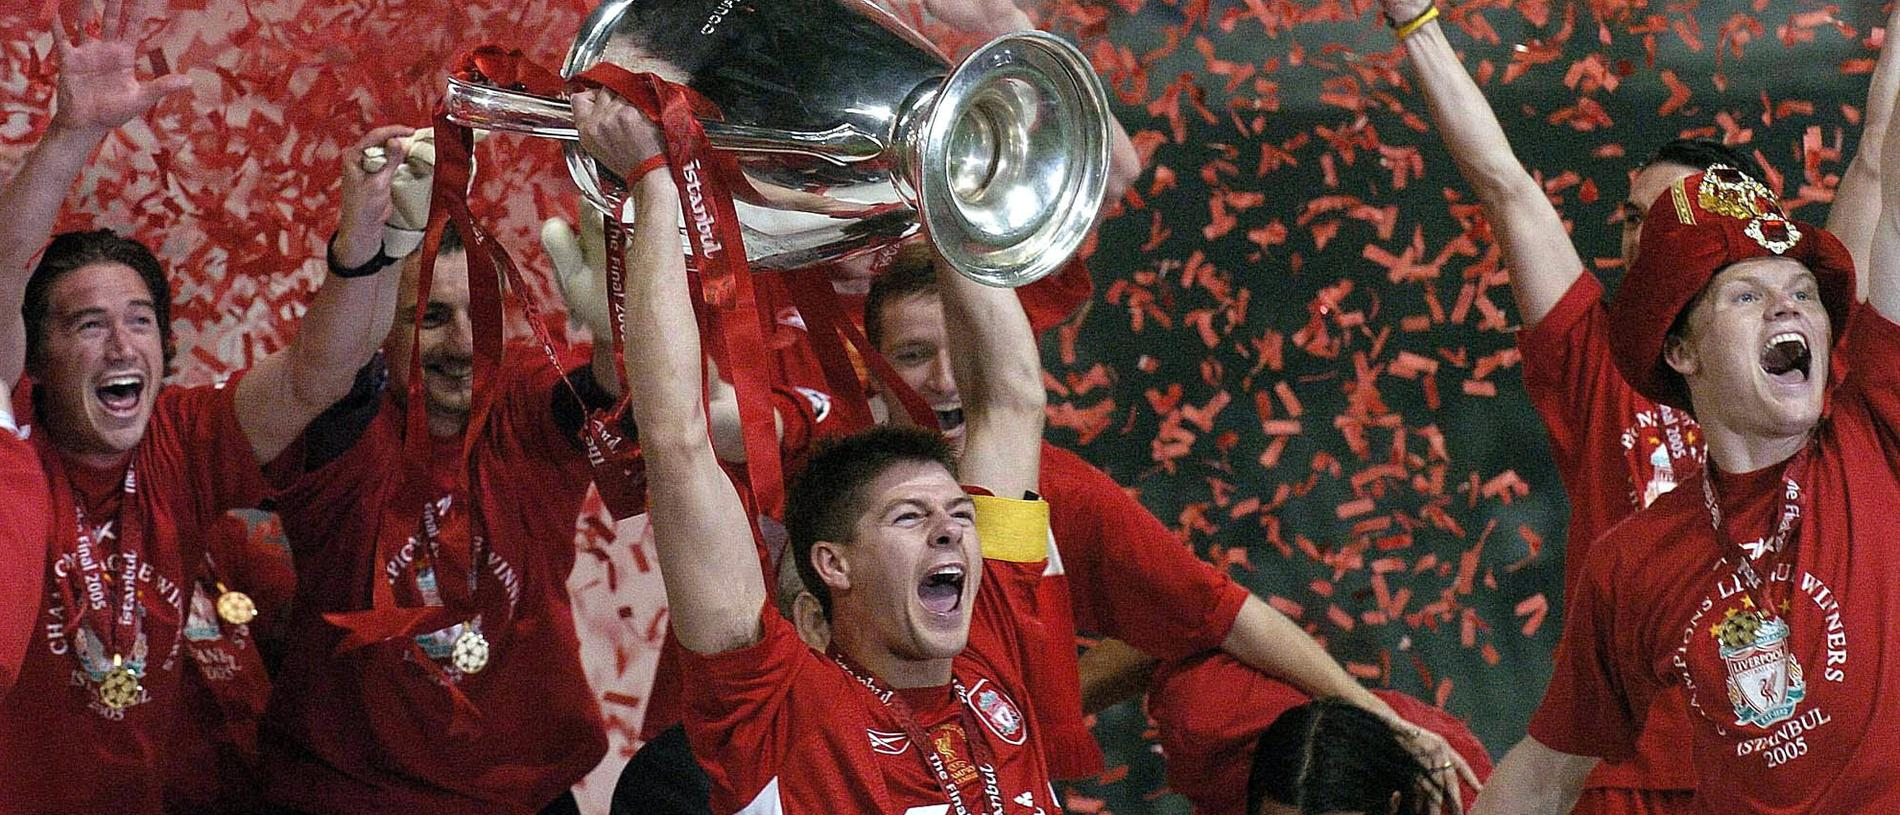 MAY 25, 2005 : Liverpool captain Steven Gerrard lifts the UEFA Champions League trophy at the Ataturk Olympic Stadium in Istanbul following defeat of AC Milan in final 25/05/05. Soccer